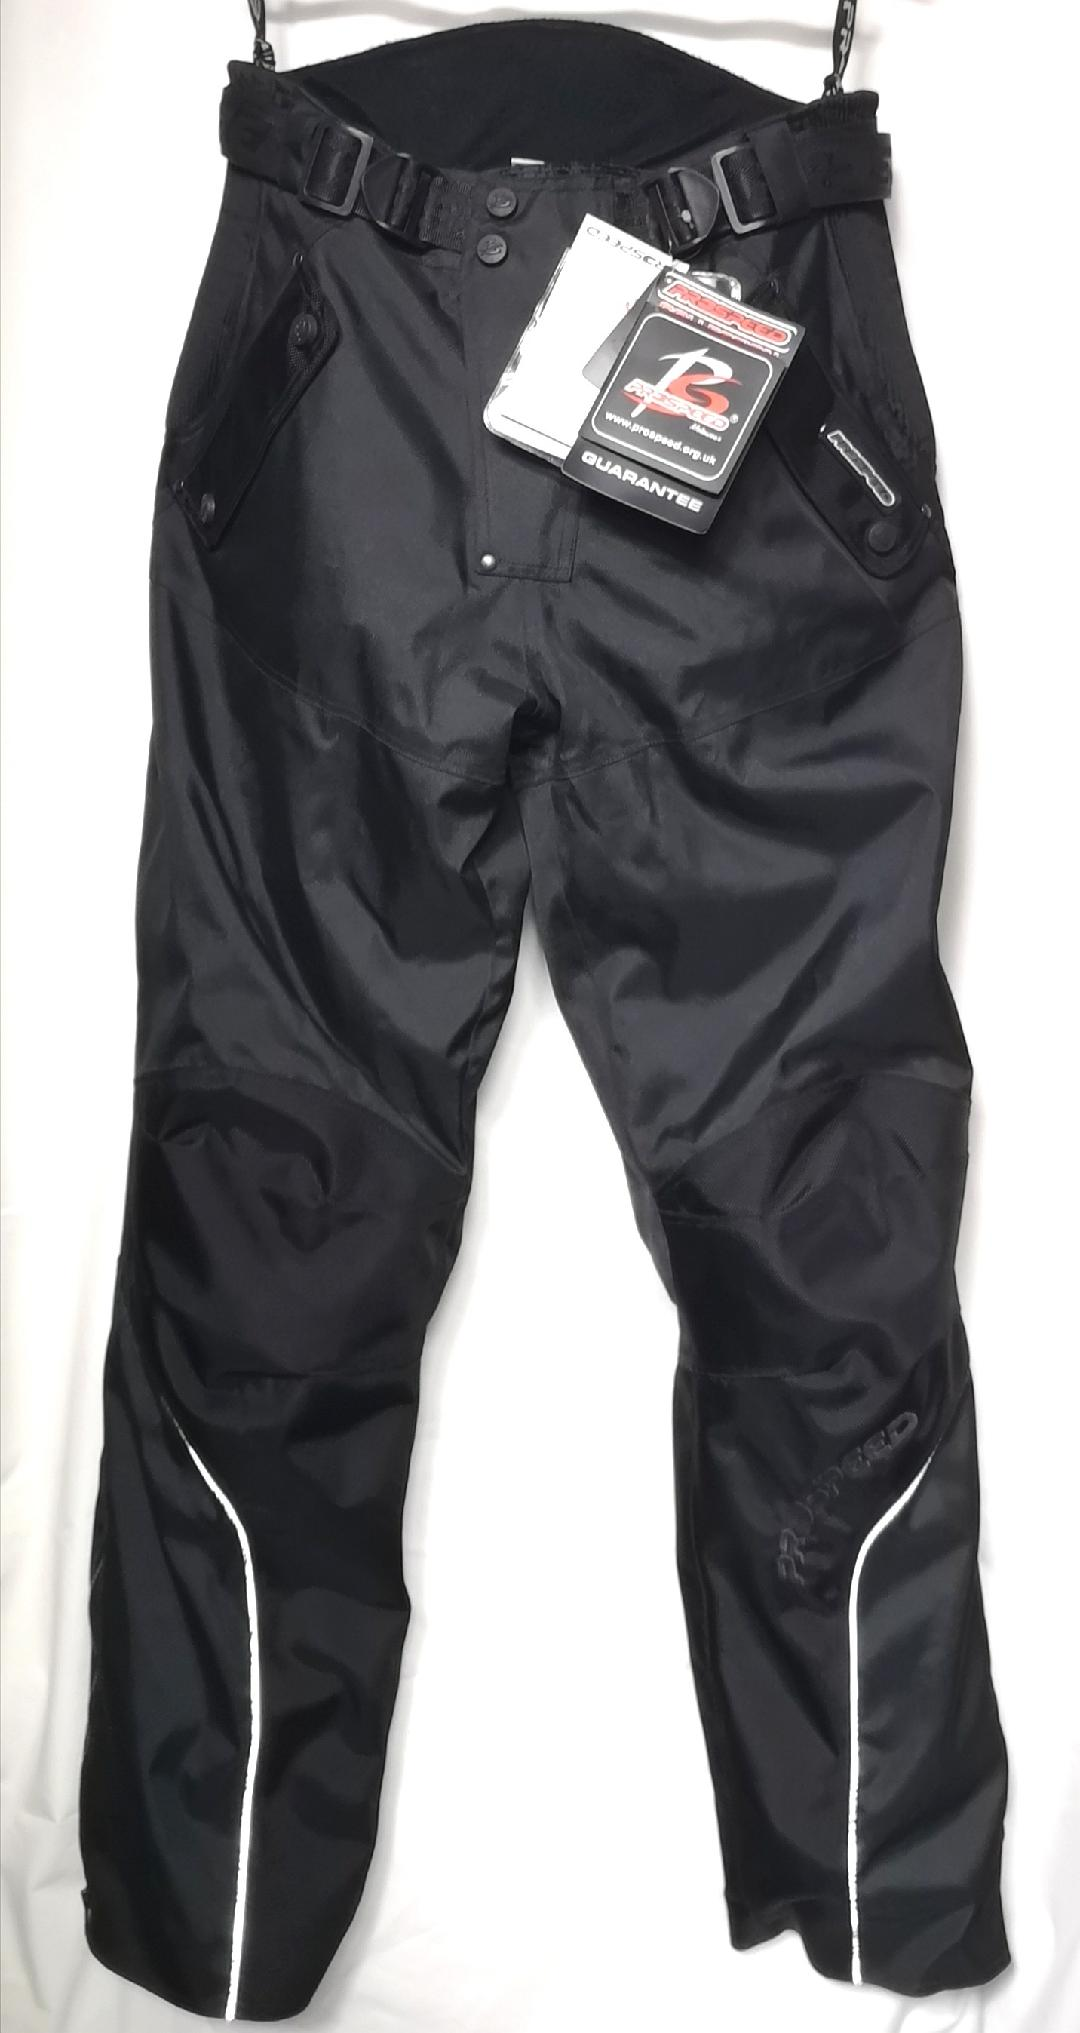 Quality Waterproof Armoured Black Motorcycle Textile Trousers 38 XXL RRP: £119